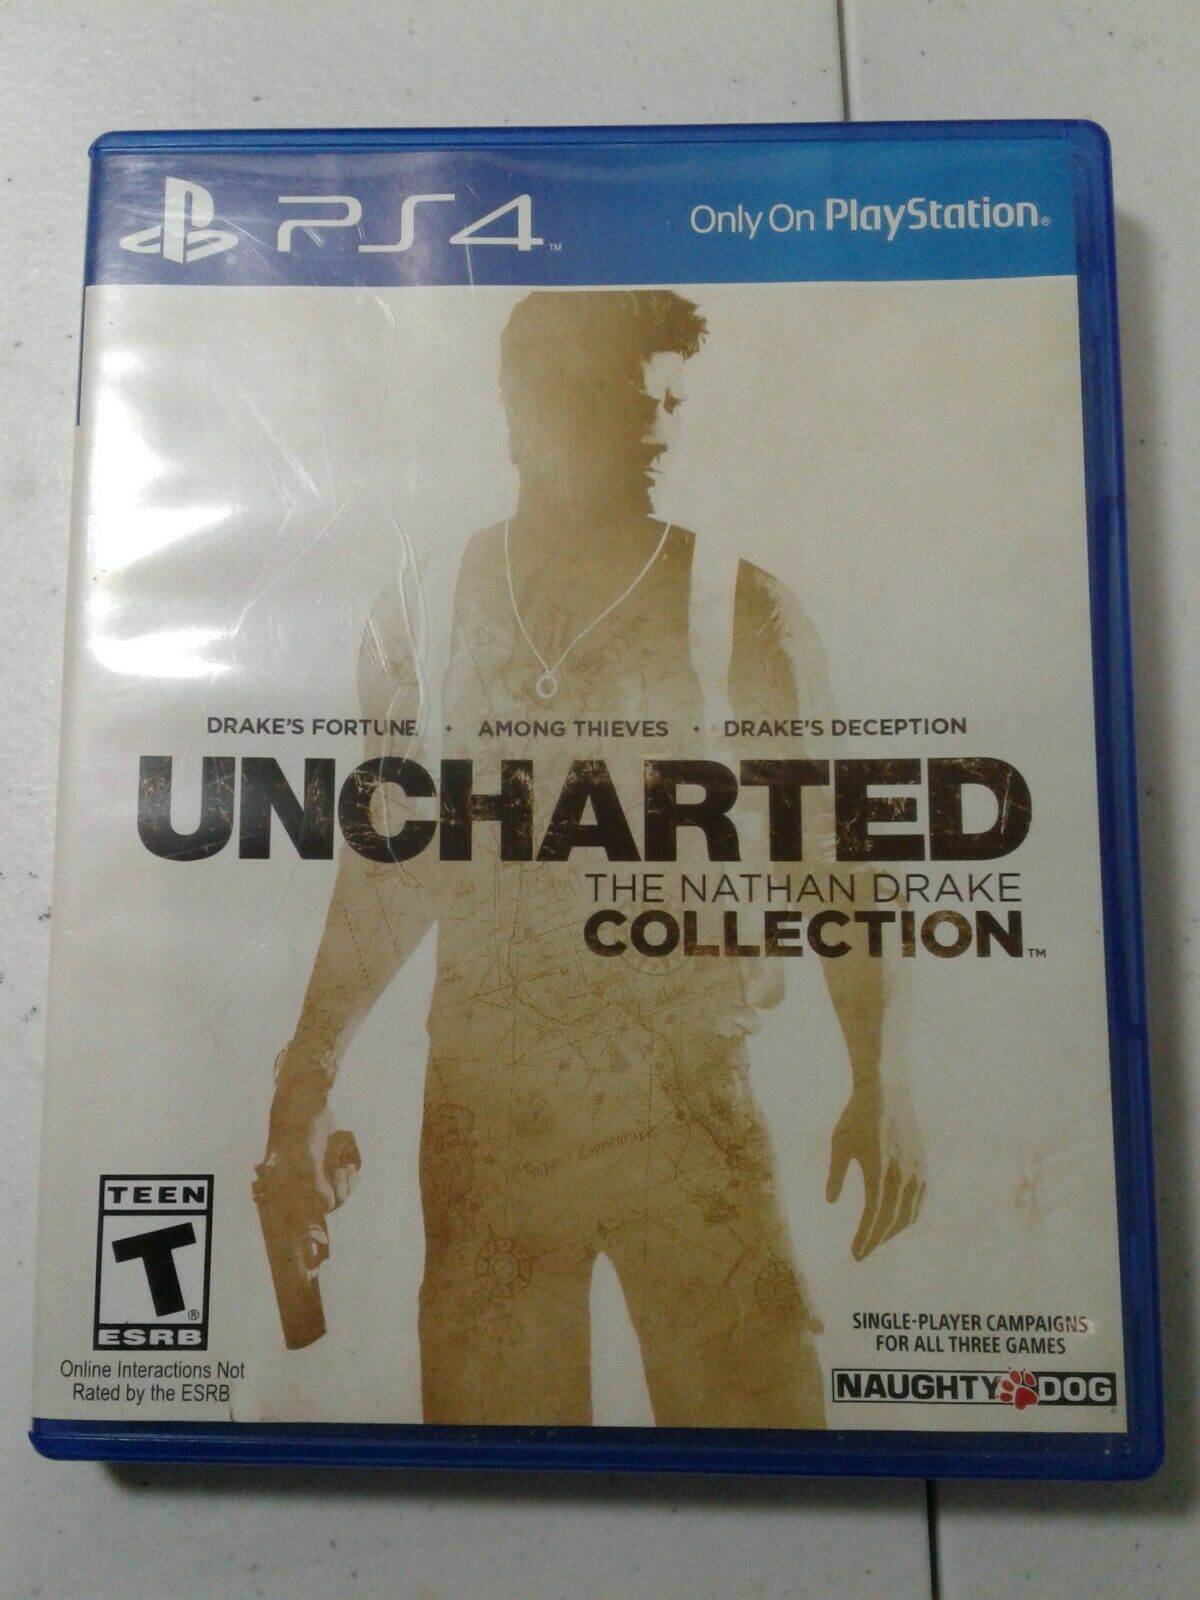 Uncharted The Nathan Drake Collection Ps4 Game 23580 5 For Sale